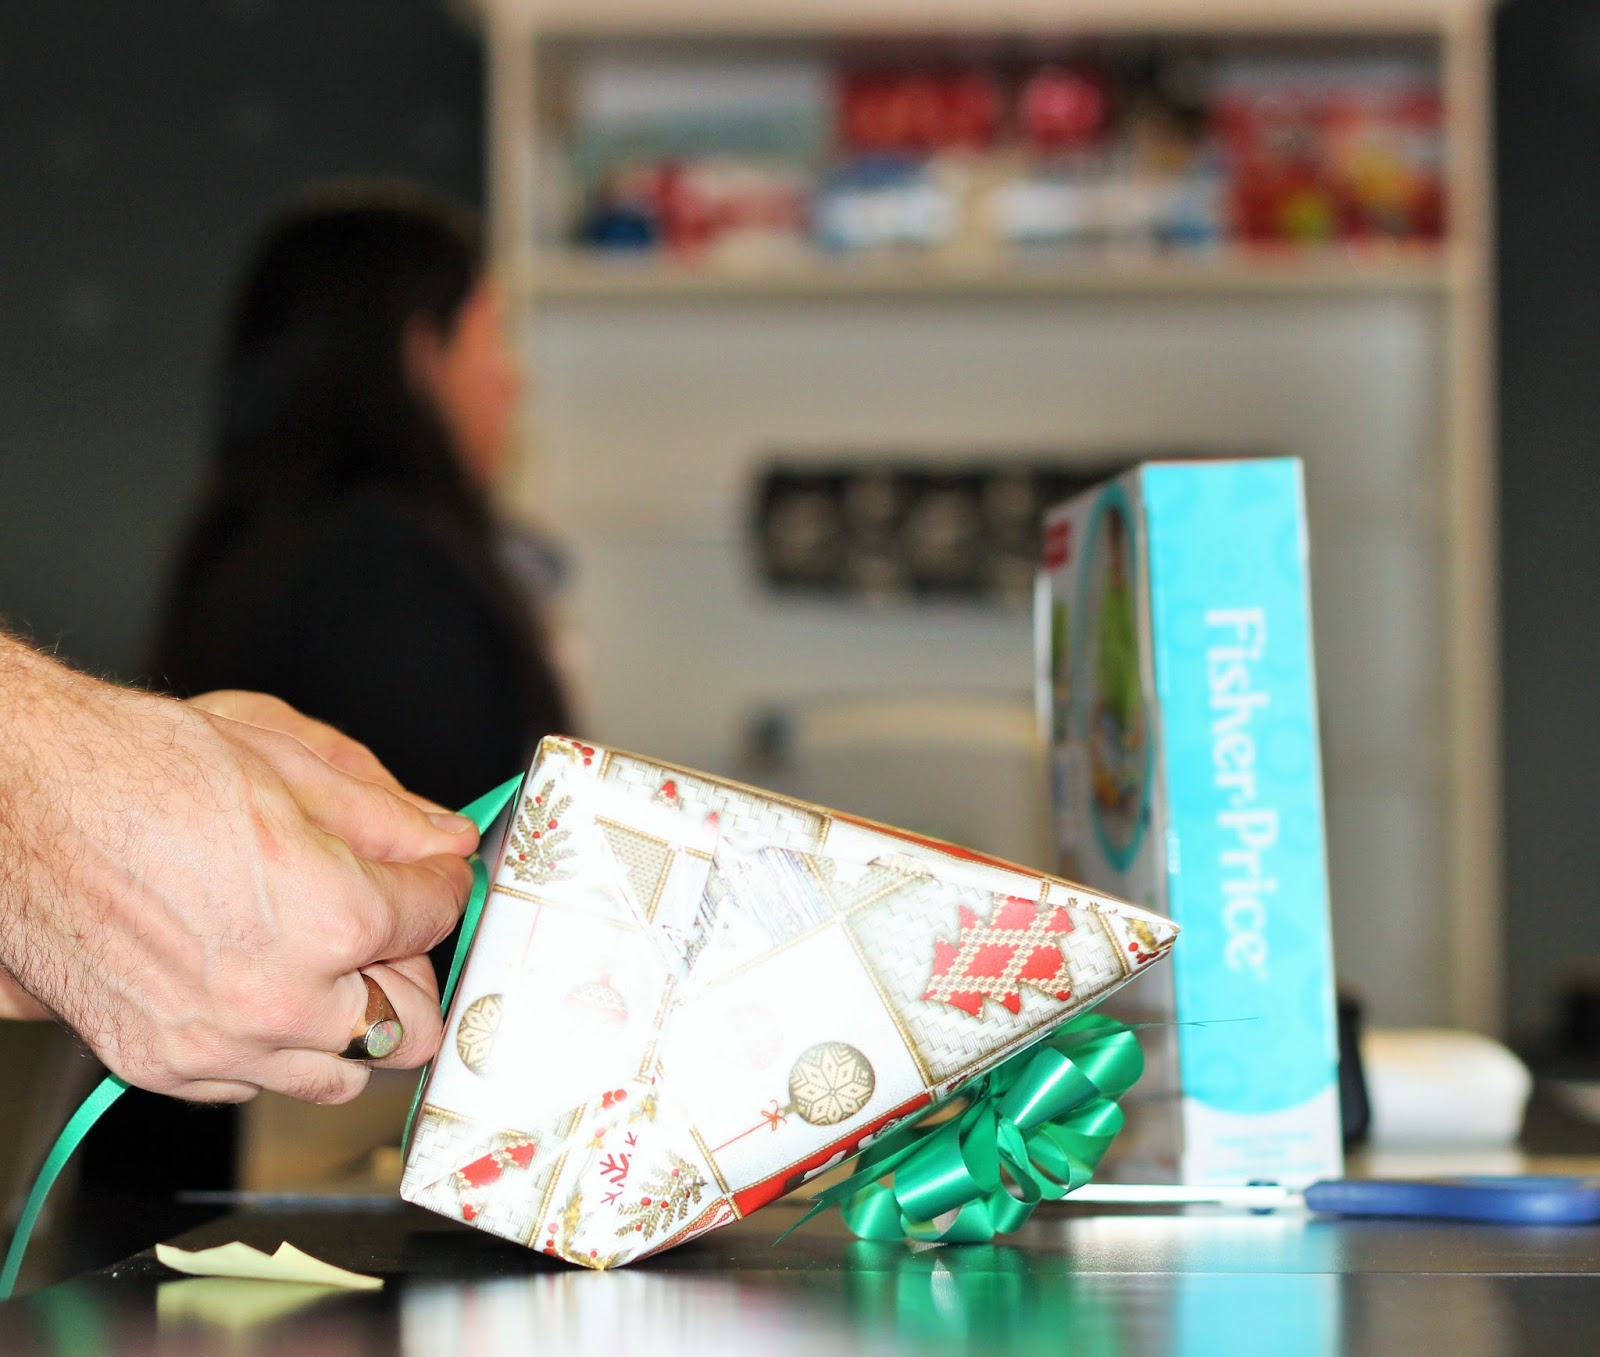 PROFESSIONAL GIFT WRAPPING AT RBC AVION BOUTIQUE IN YORKDALE SHOPPING CENTER |  MY EXPERIENCE IN DETAILS